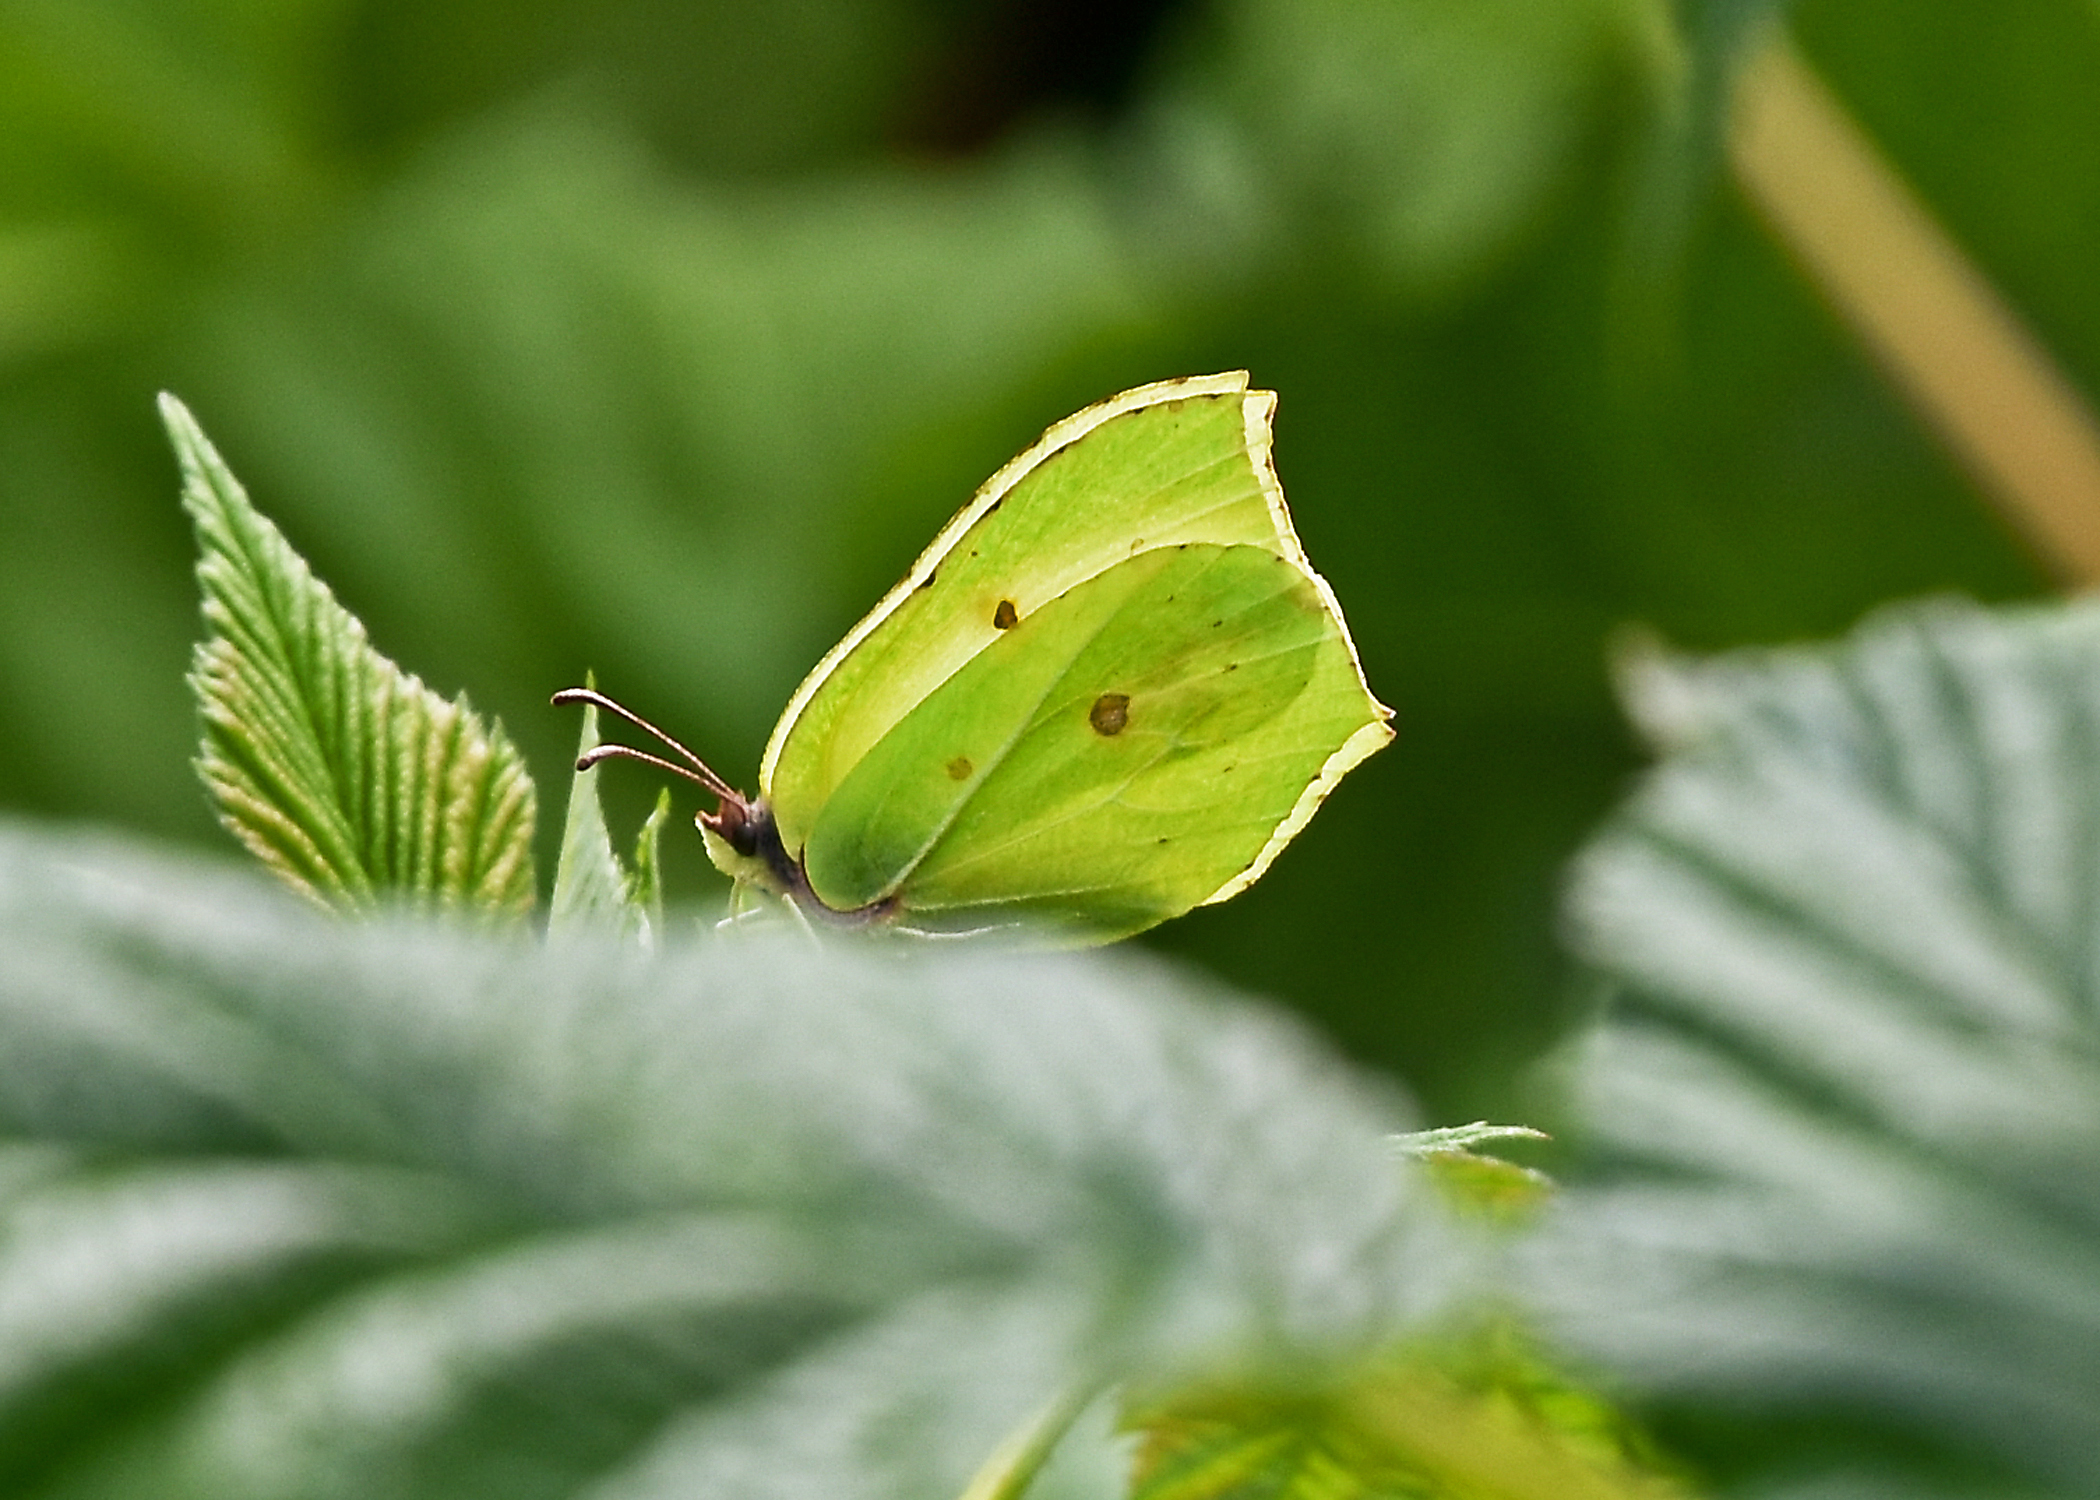 BRIMSTONE BUTTERFLY - Taken at Coronation Ave Photography by Muriel Dale